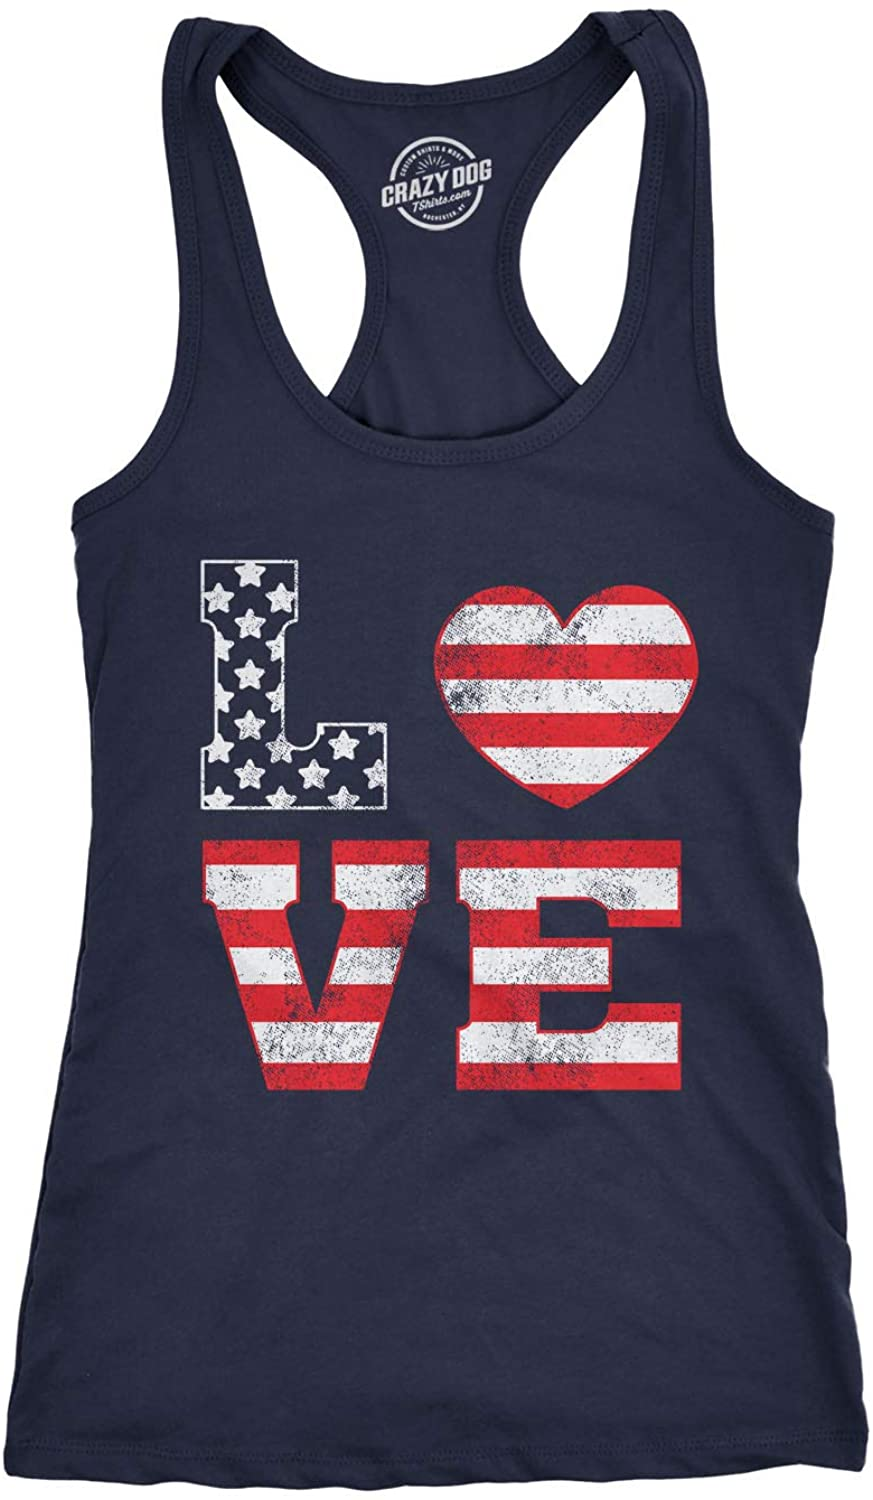 Womens Tank Love American Flag Tanktop Cute 4th of July Shirt